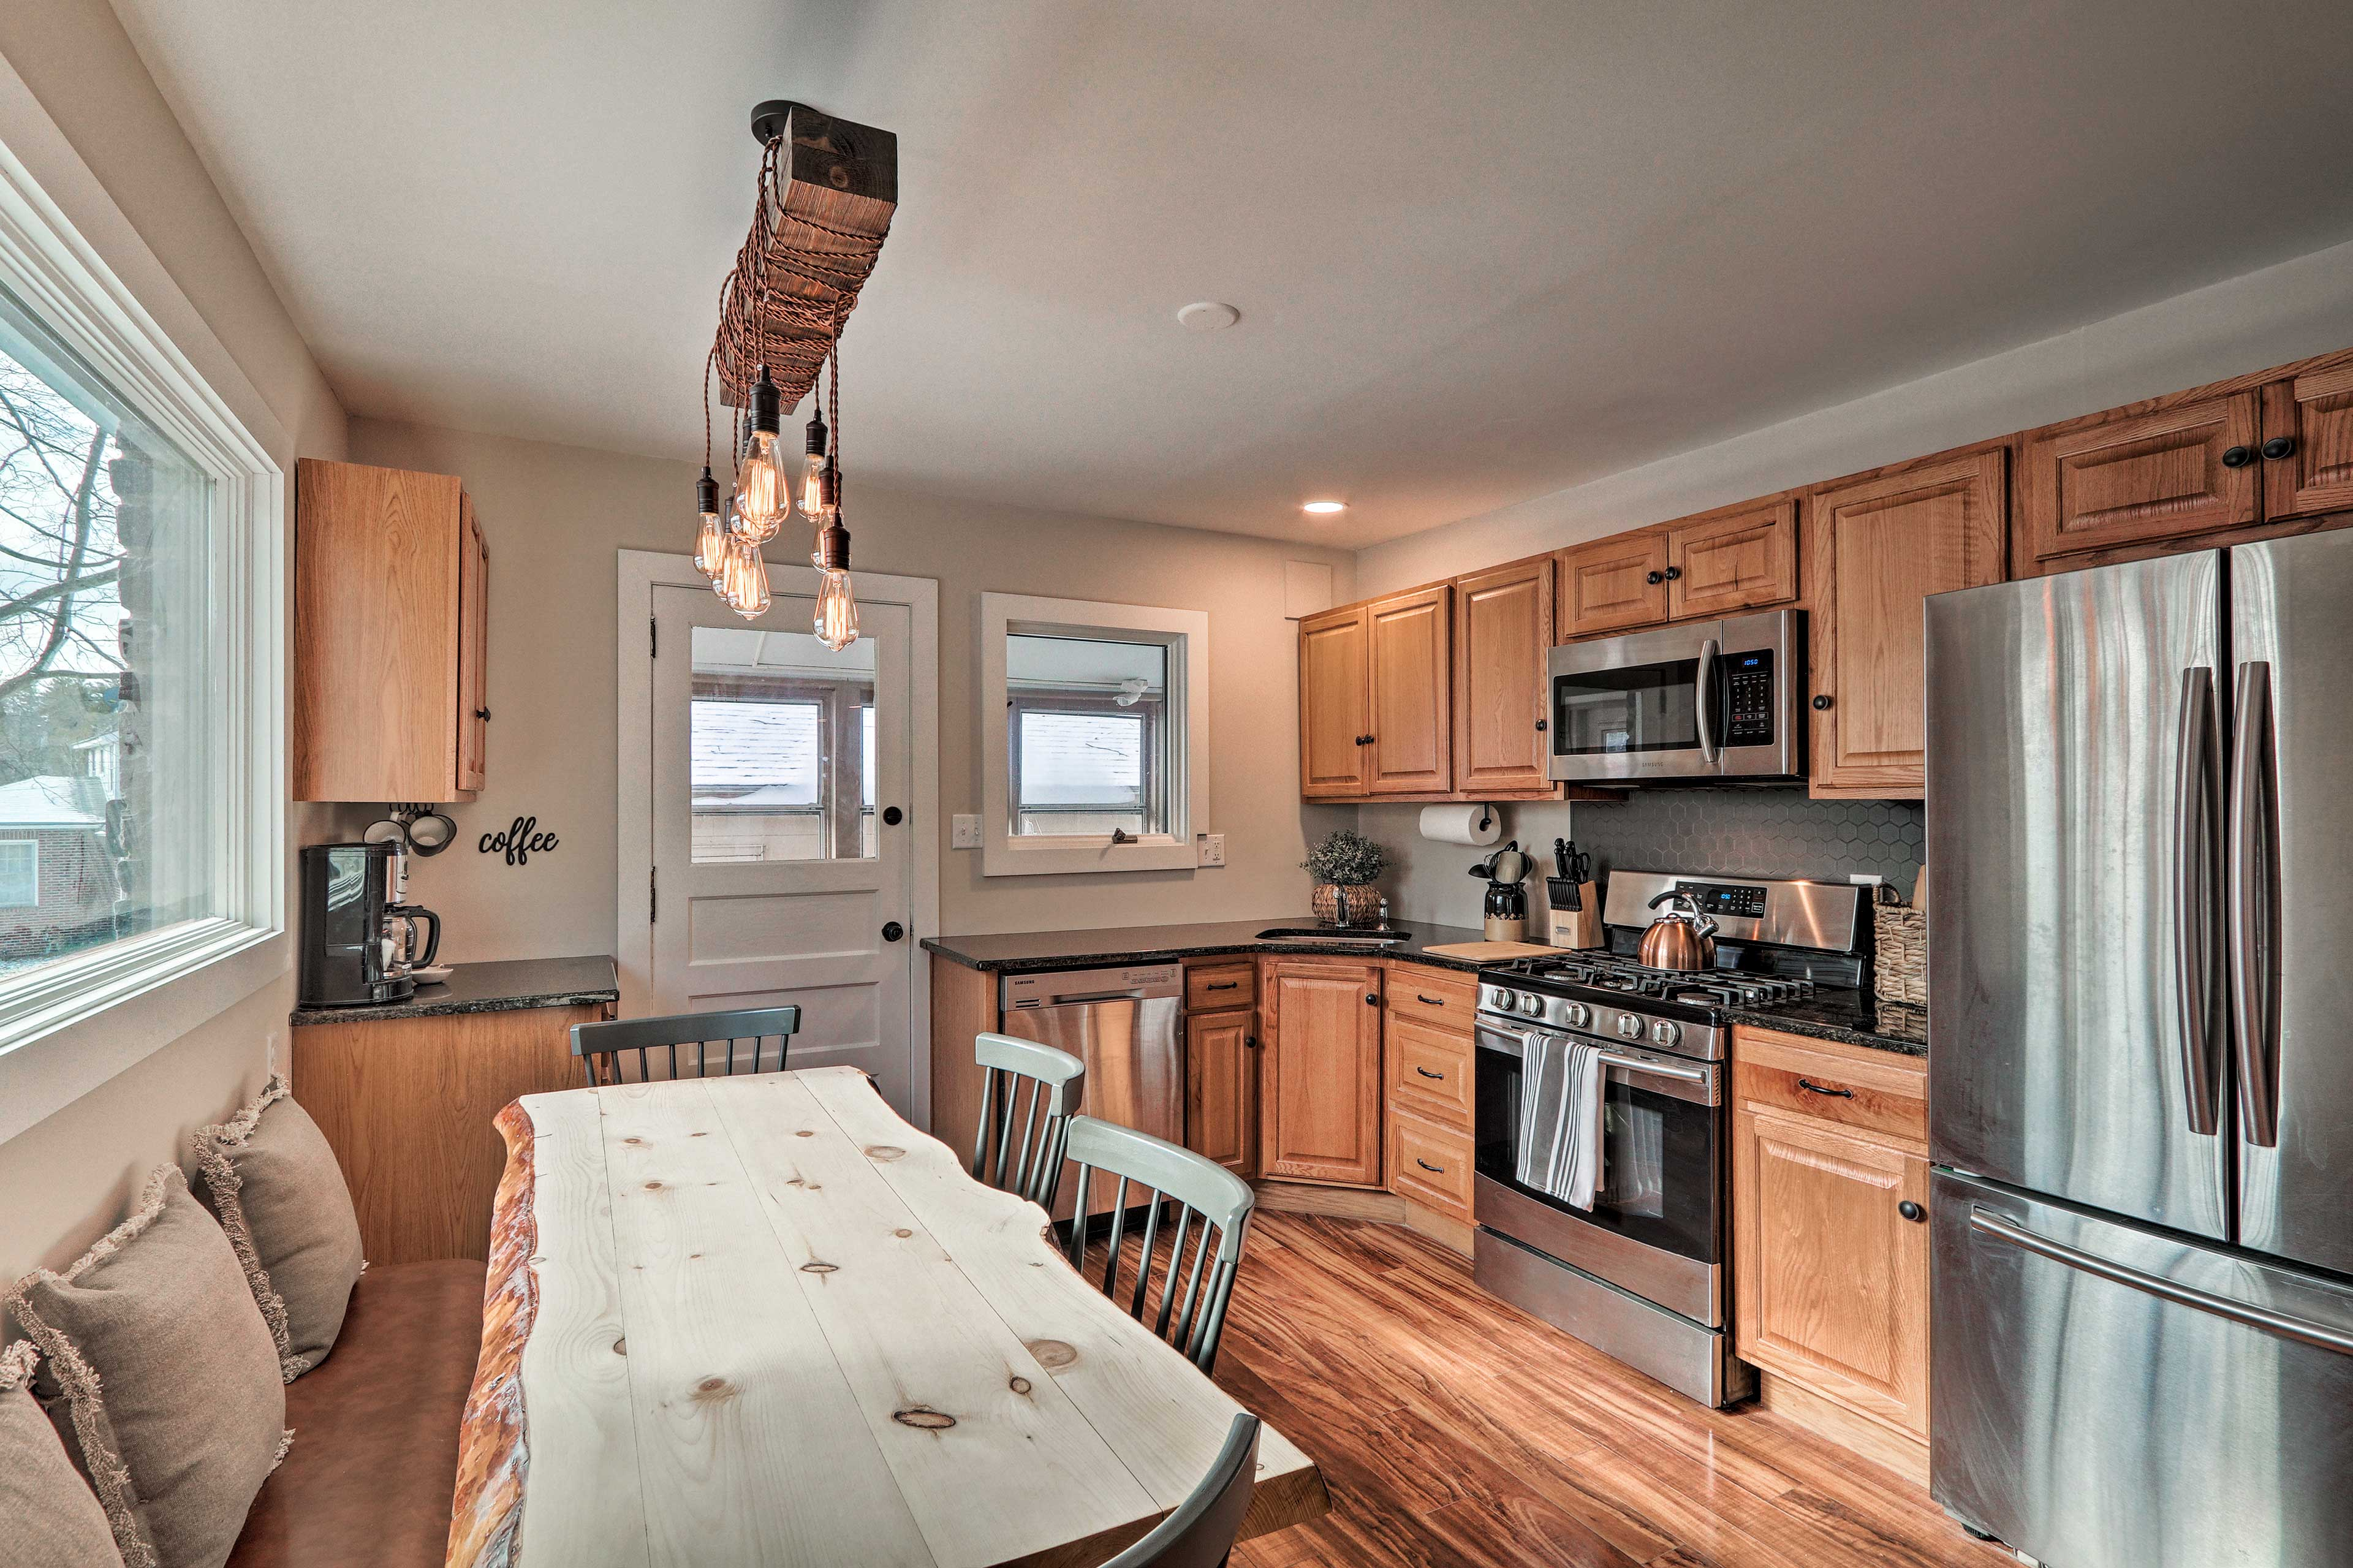 The modern kitchen is equipped with stainless steel appliances.